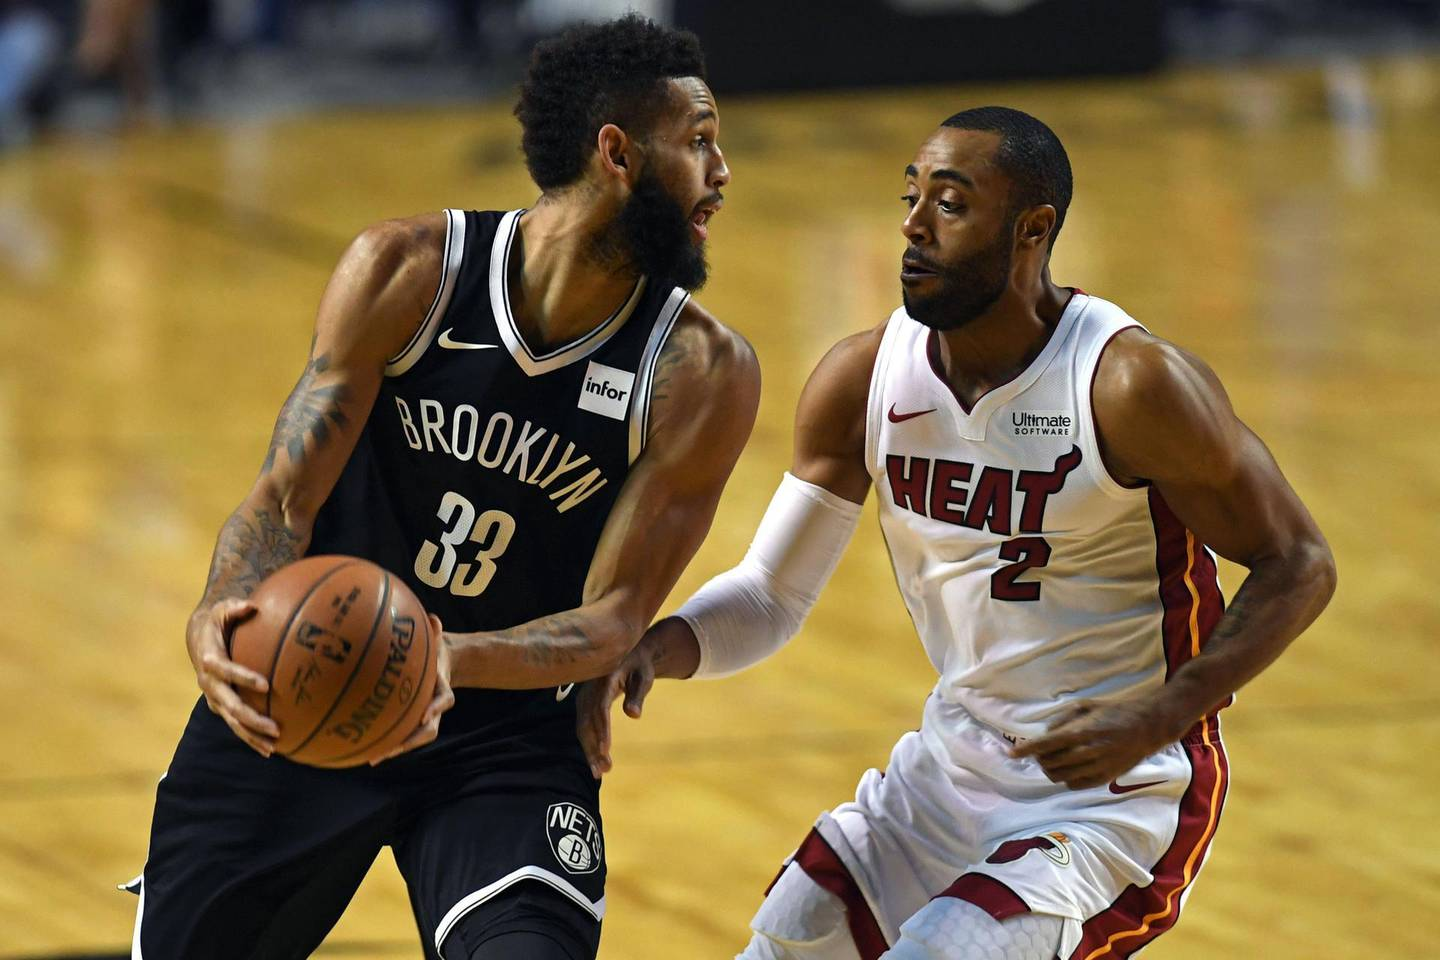 Brooklyn Nets' Allen Crabbe (L) vies for the ball with Miami Heat's Wayne Ellington, during an NBA Global Games match at the Mexico City Arena, on December 9, 2017, in Mexico City. / AFP PHOTO / PEDRO PARDO